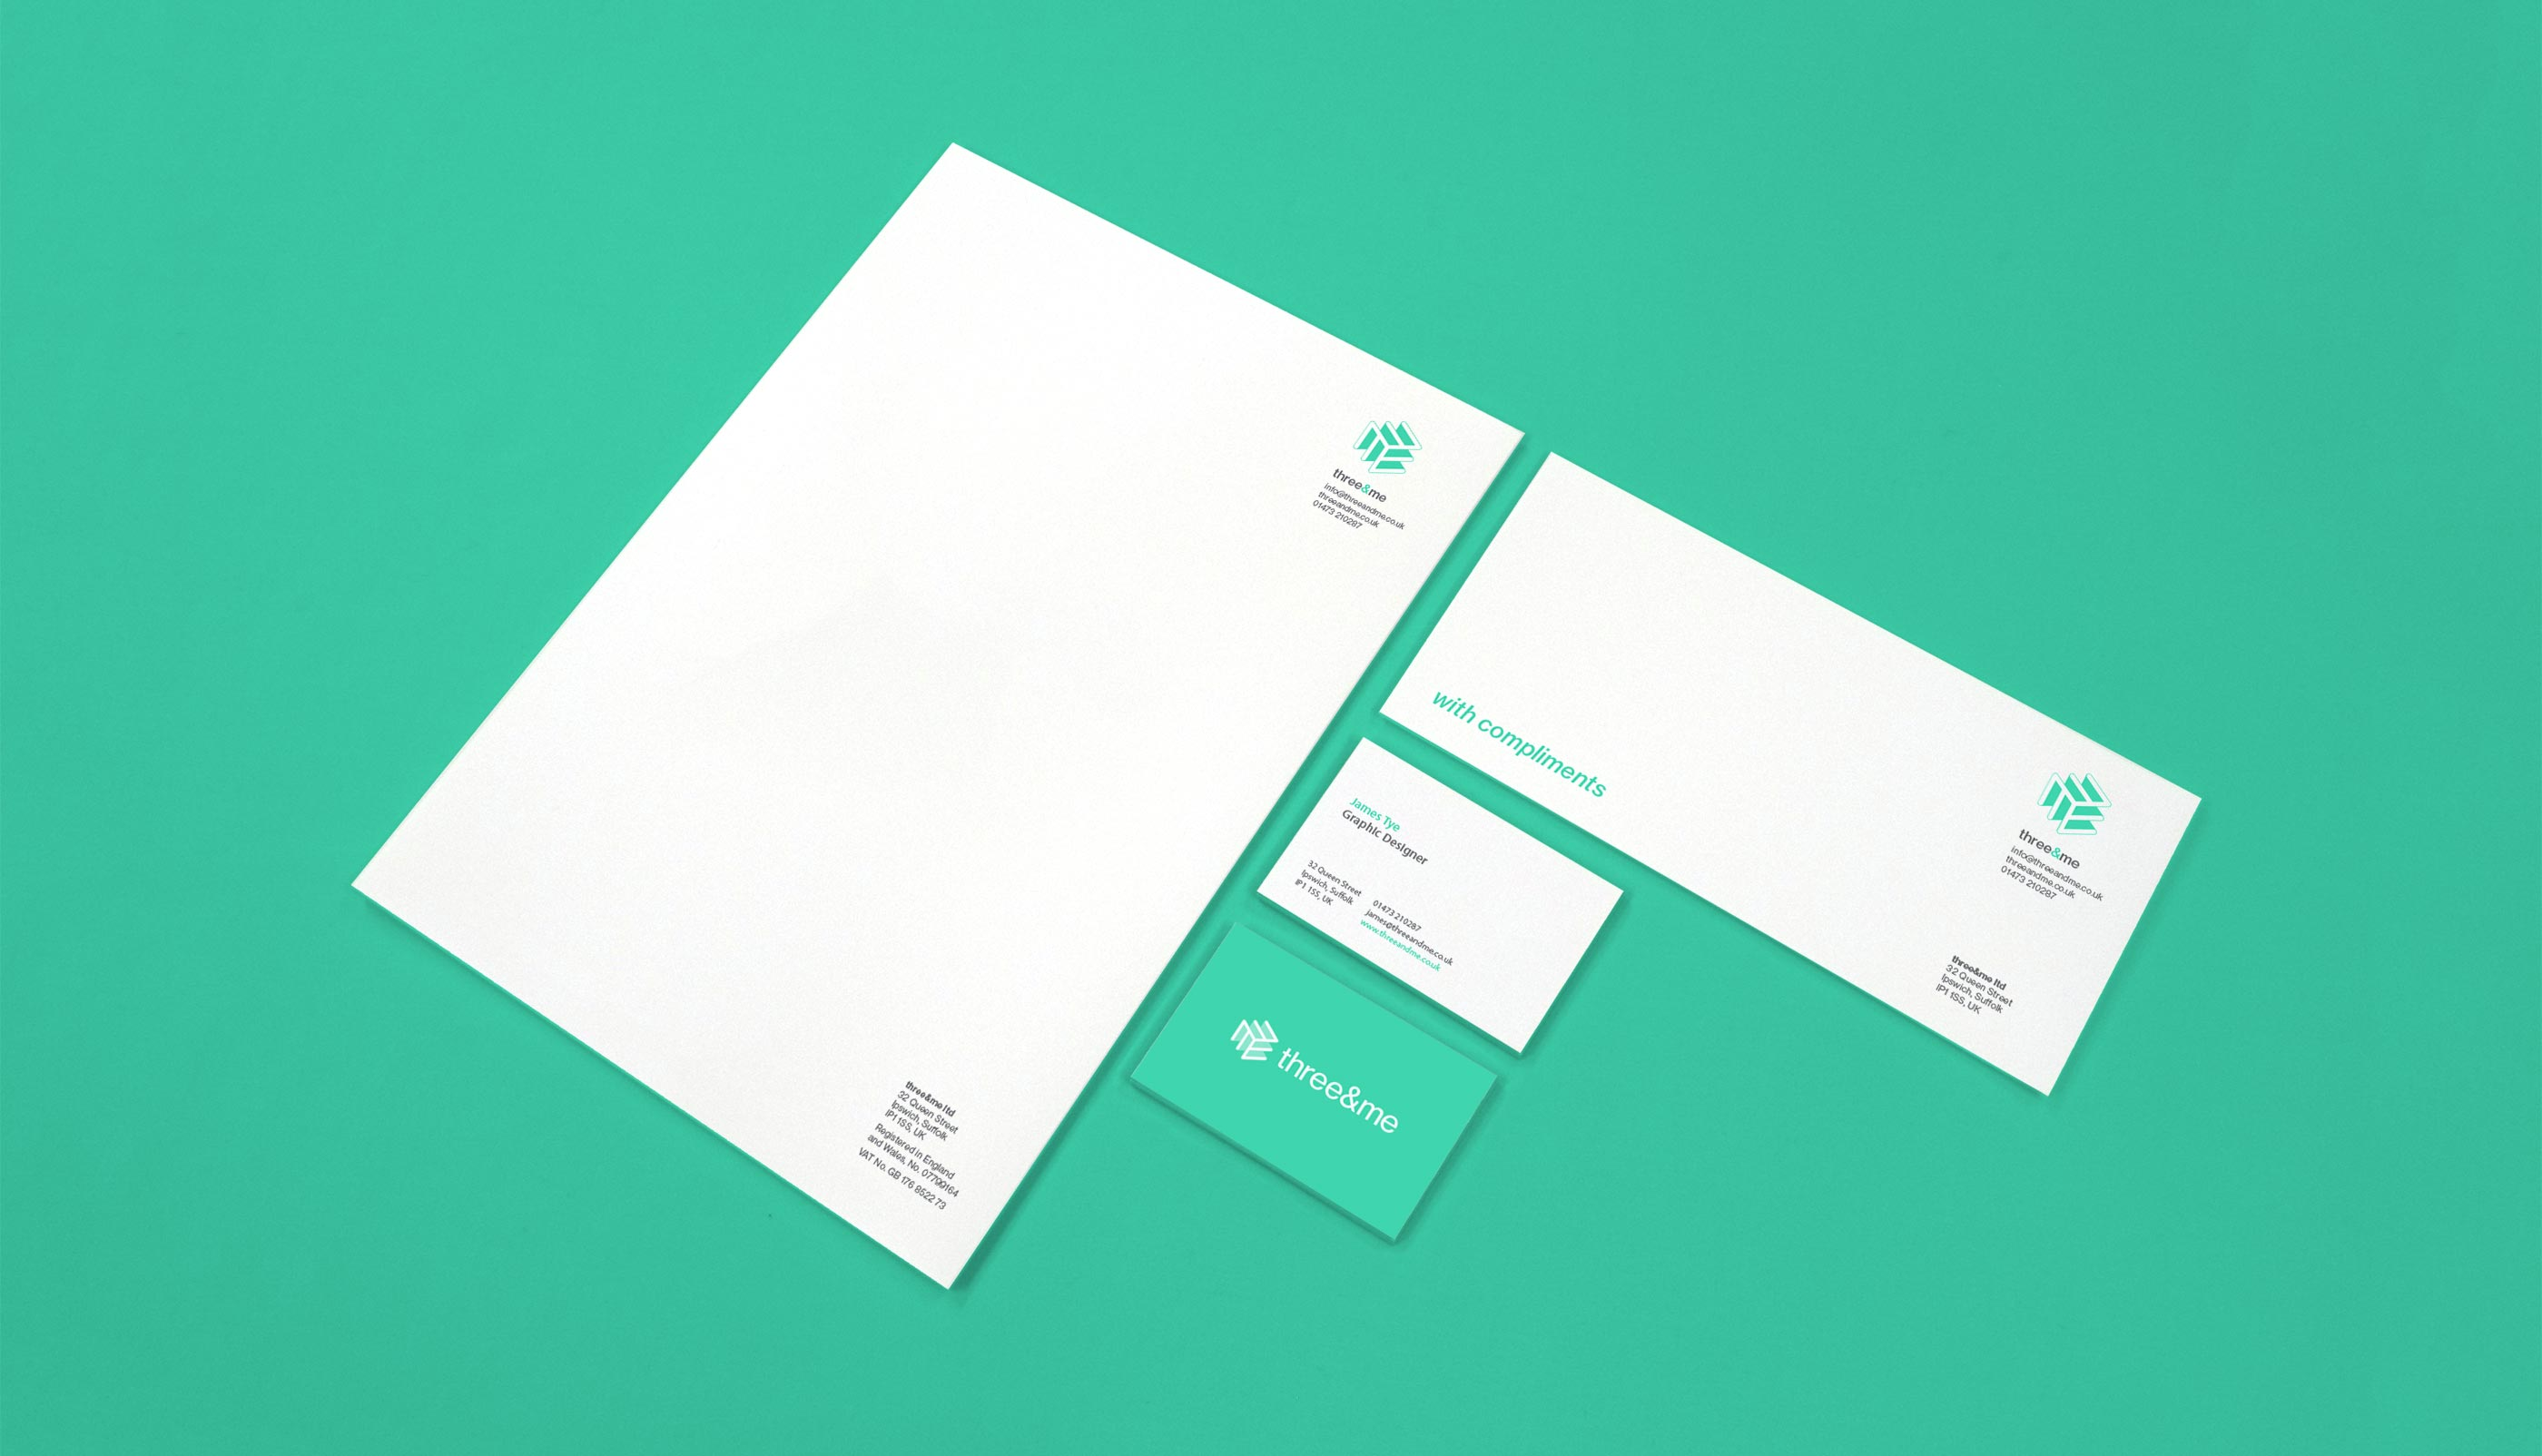 Business stationery design and print for Three&me graphic design agency in Ipswich, Suffolk.